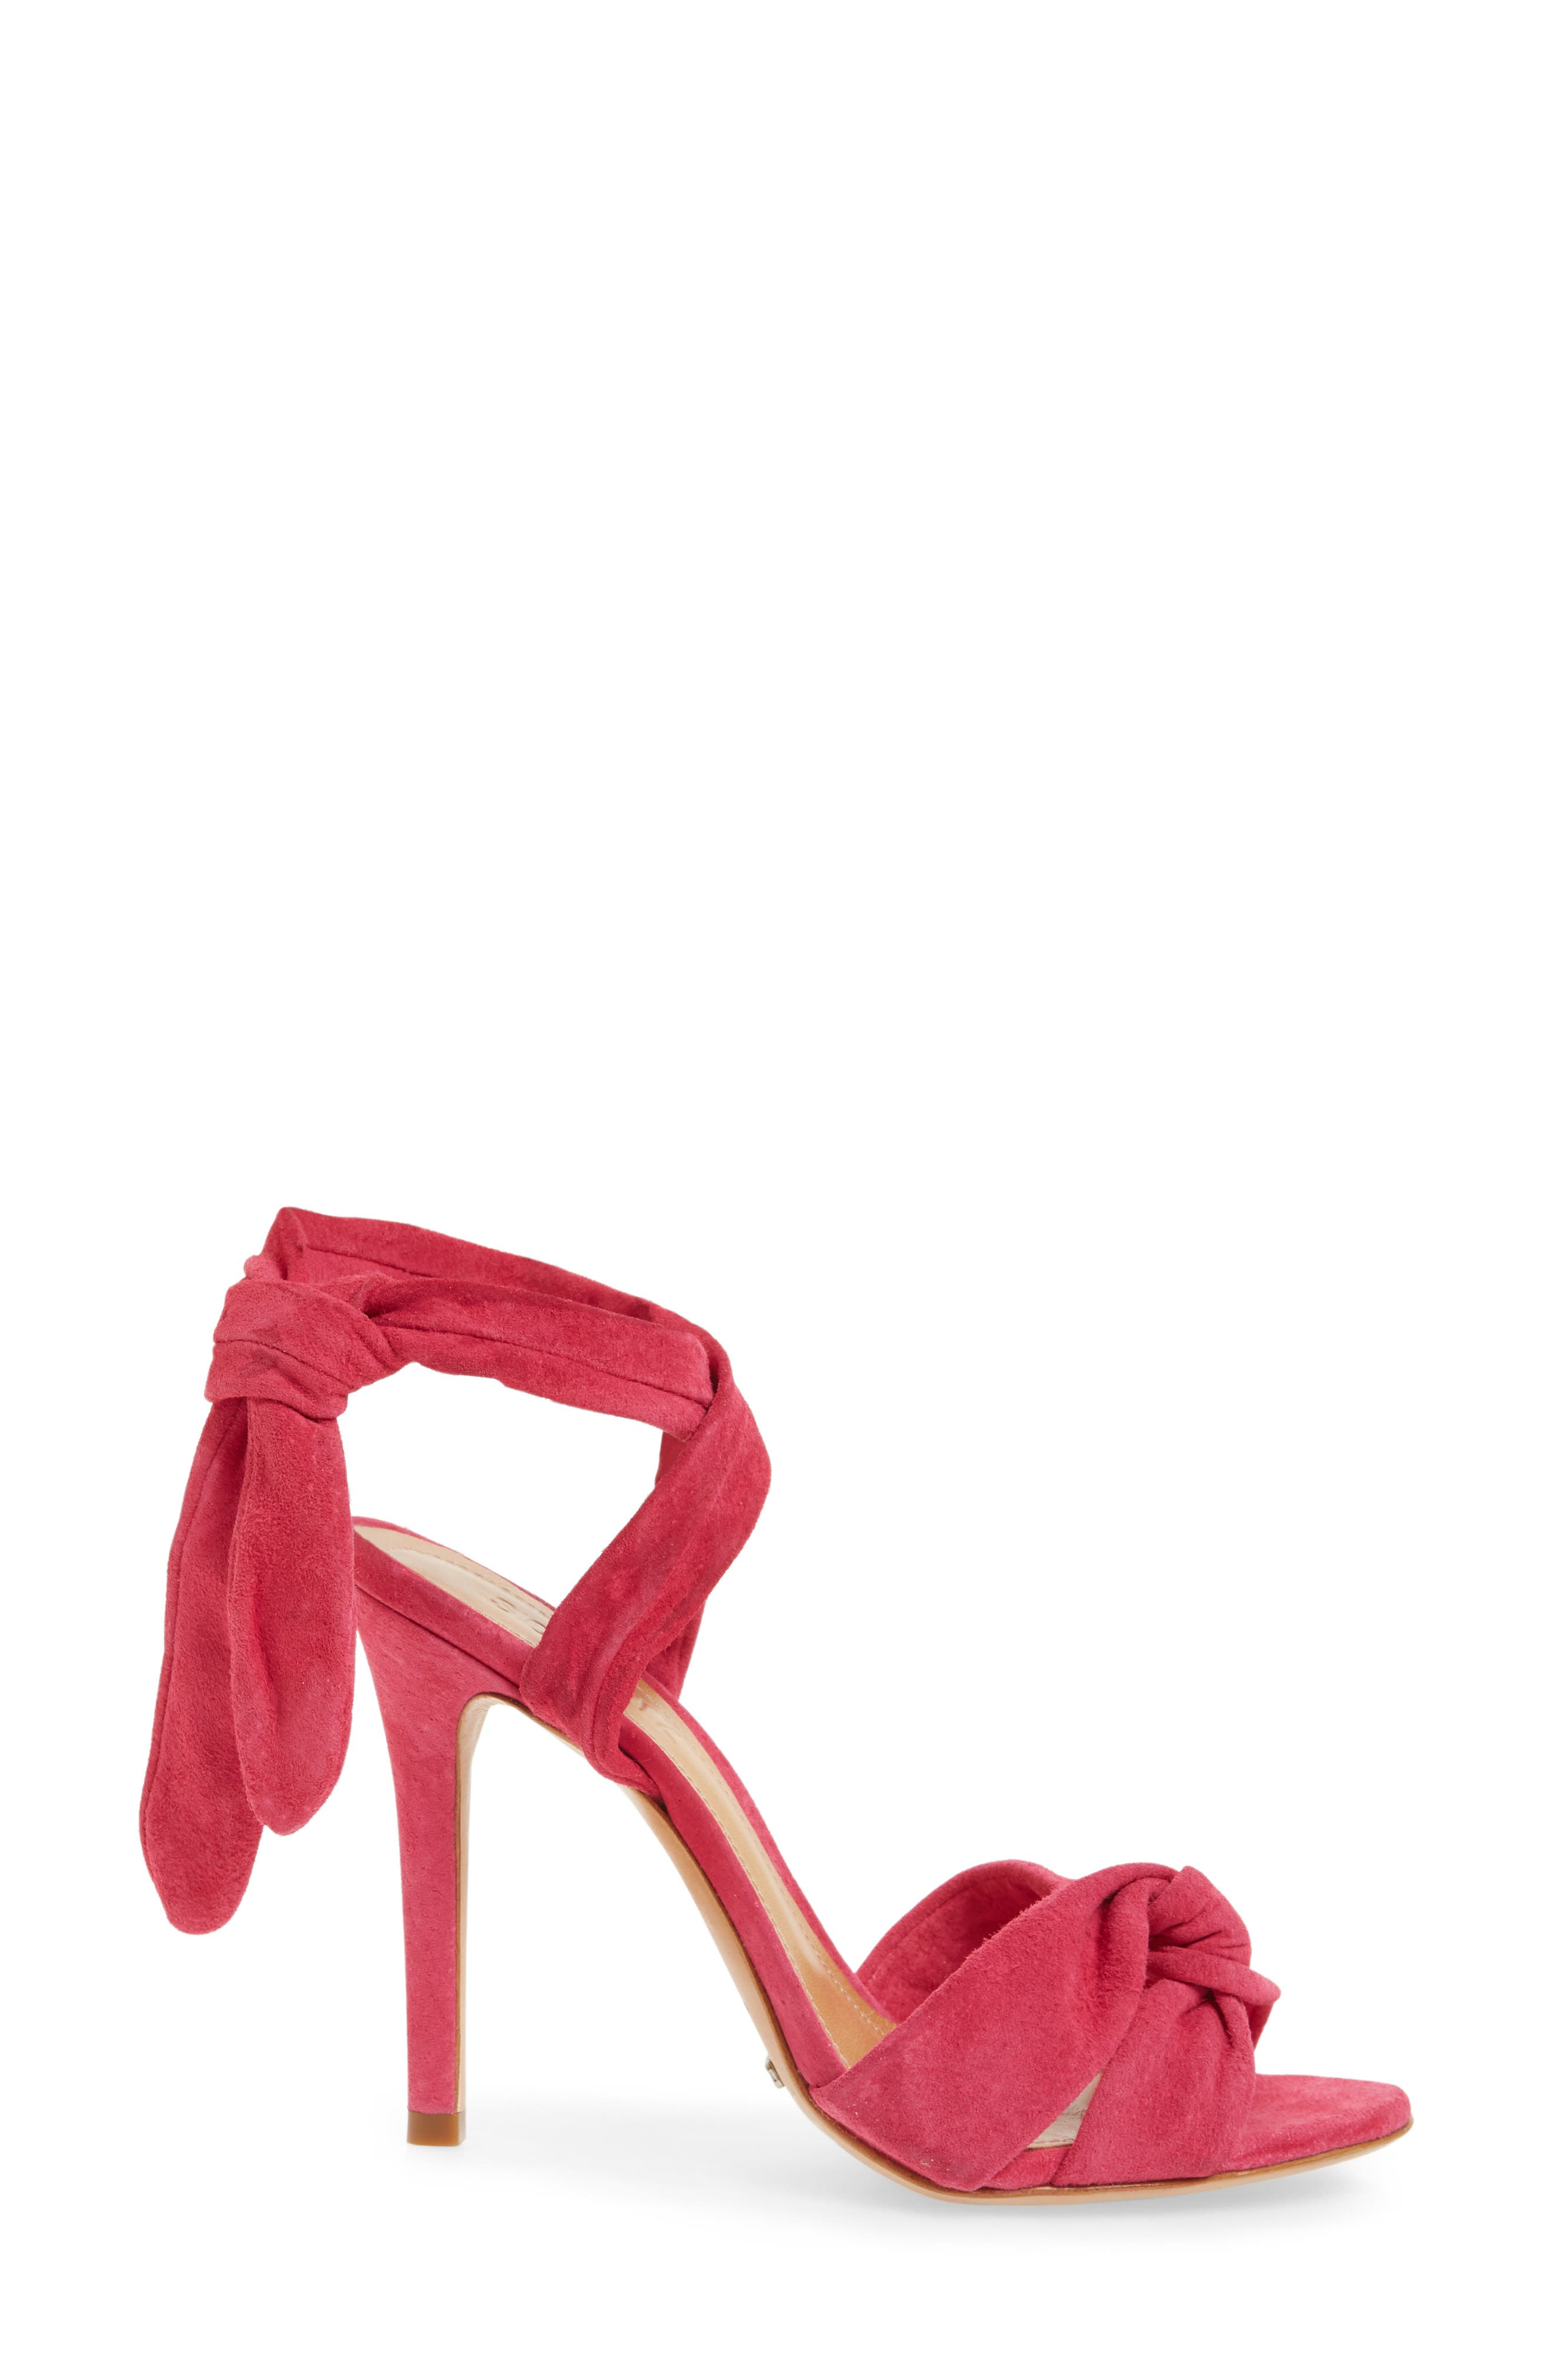 Alternate Image 3  - Schutz Monia Sandal (Women)